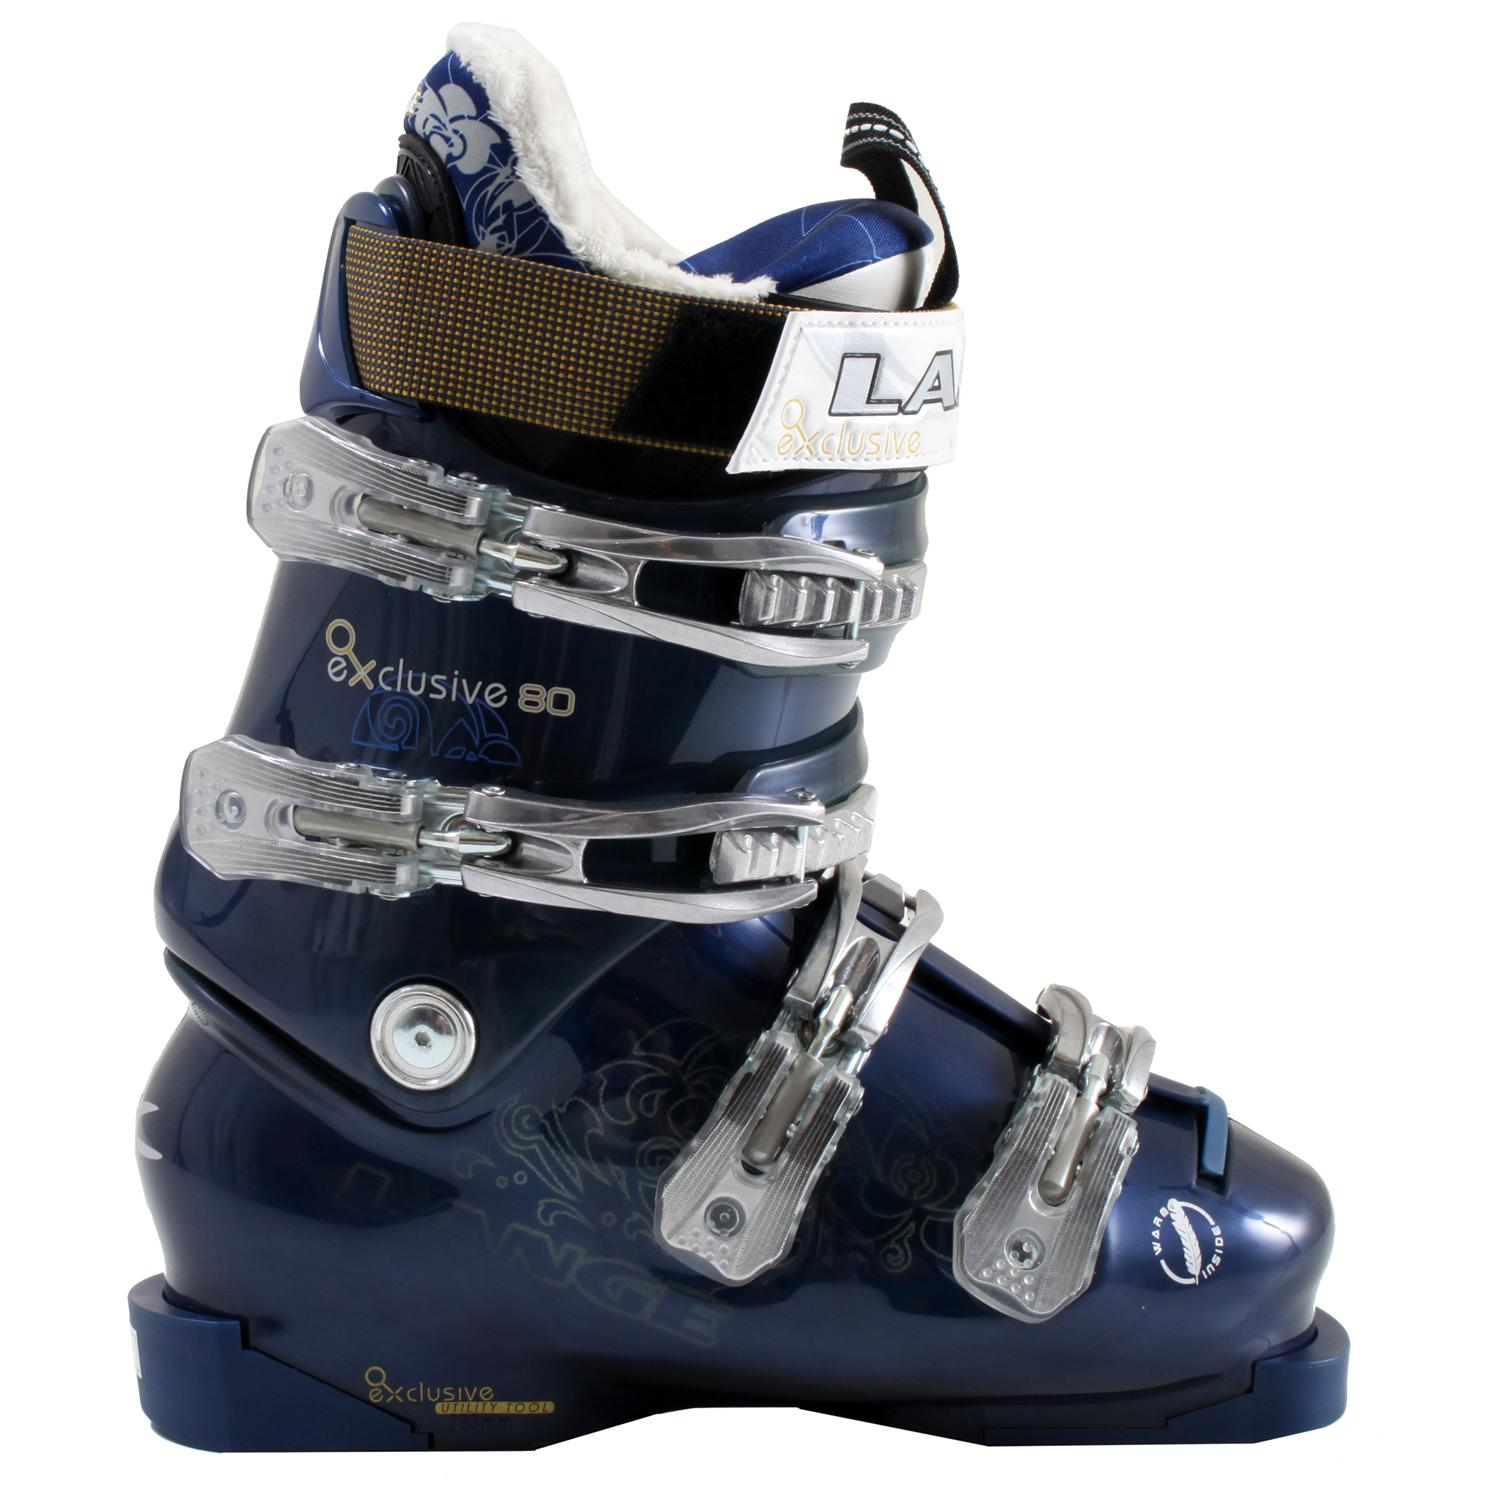 Lange Exclusive 80 Ski Boots - Women's 2009 | evo outlet